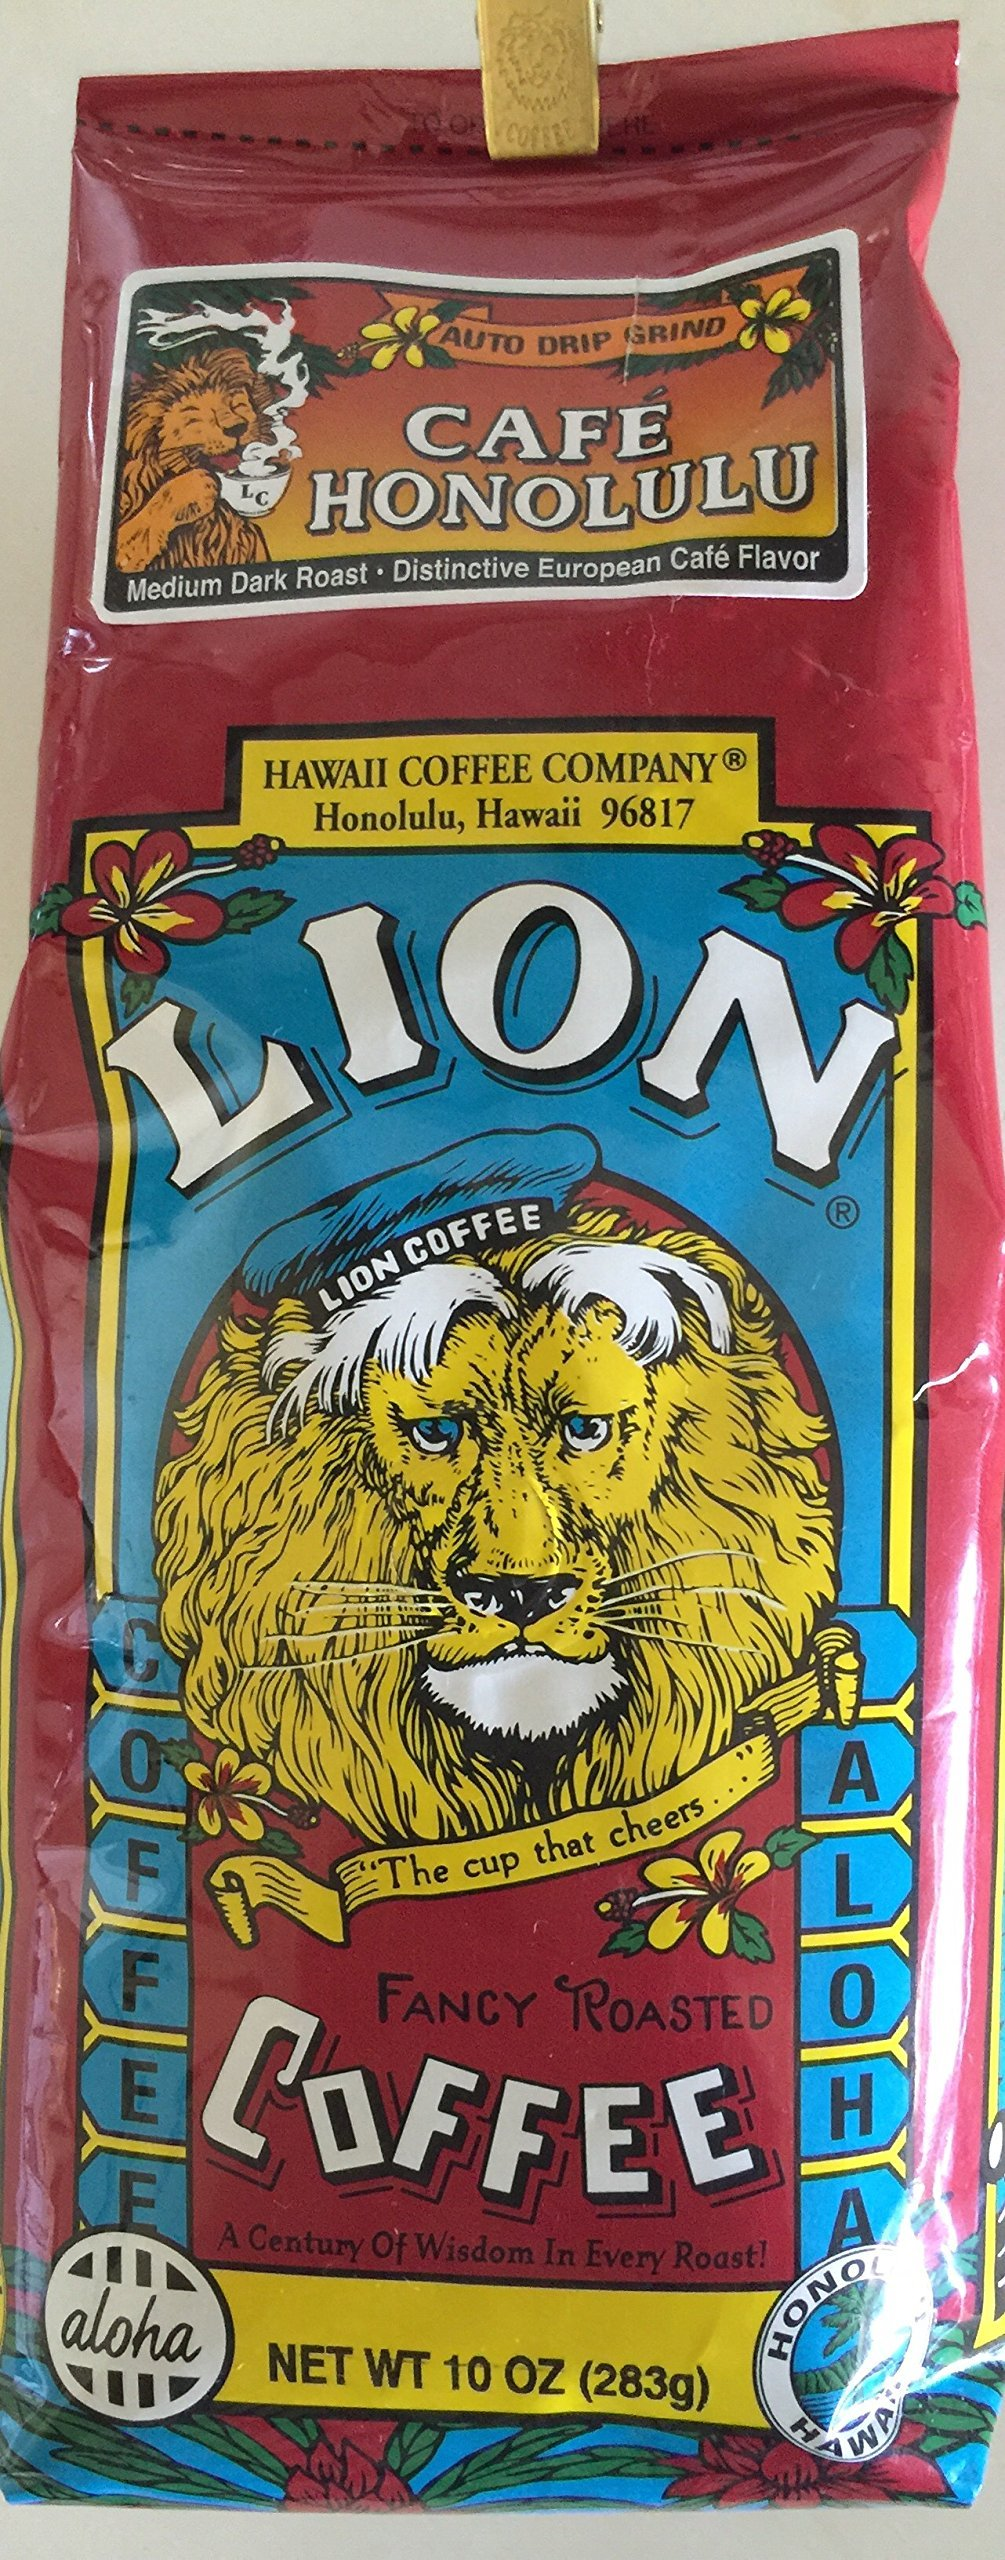 Lion Coffee Company Cafe Honolulu Ground Coffee 10 oz.